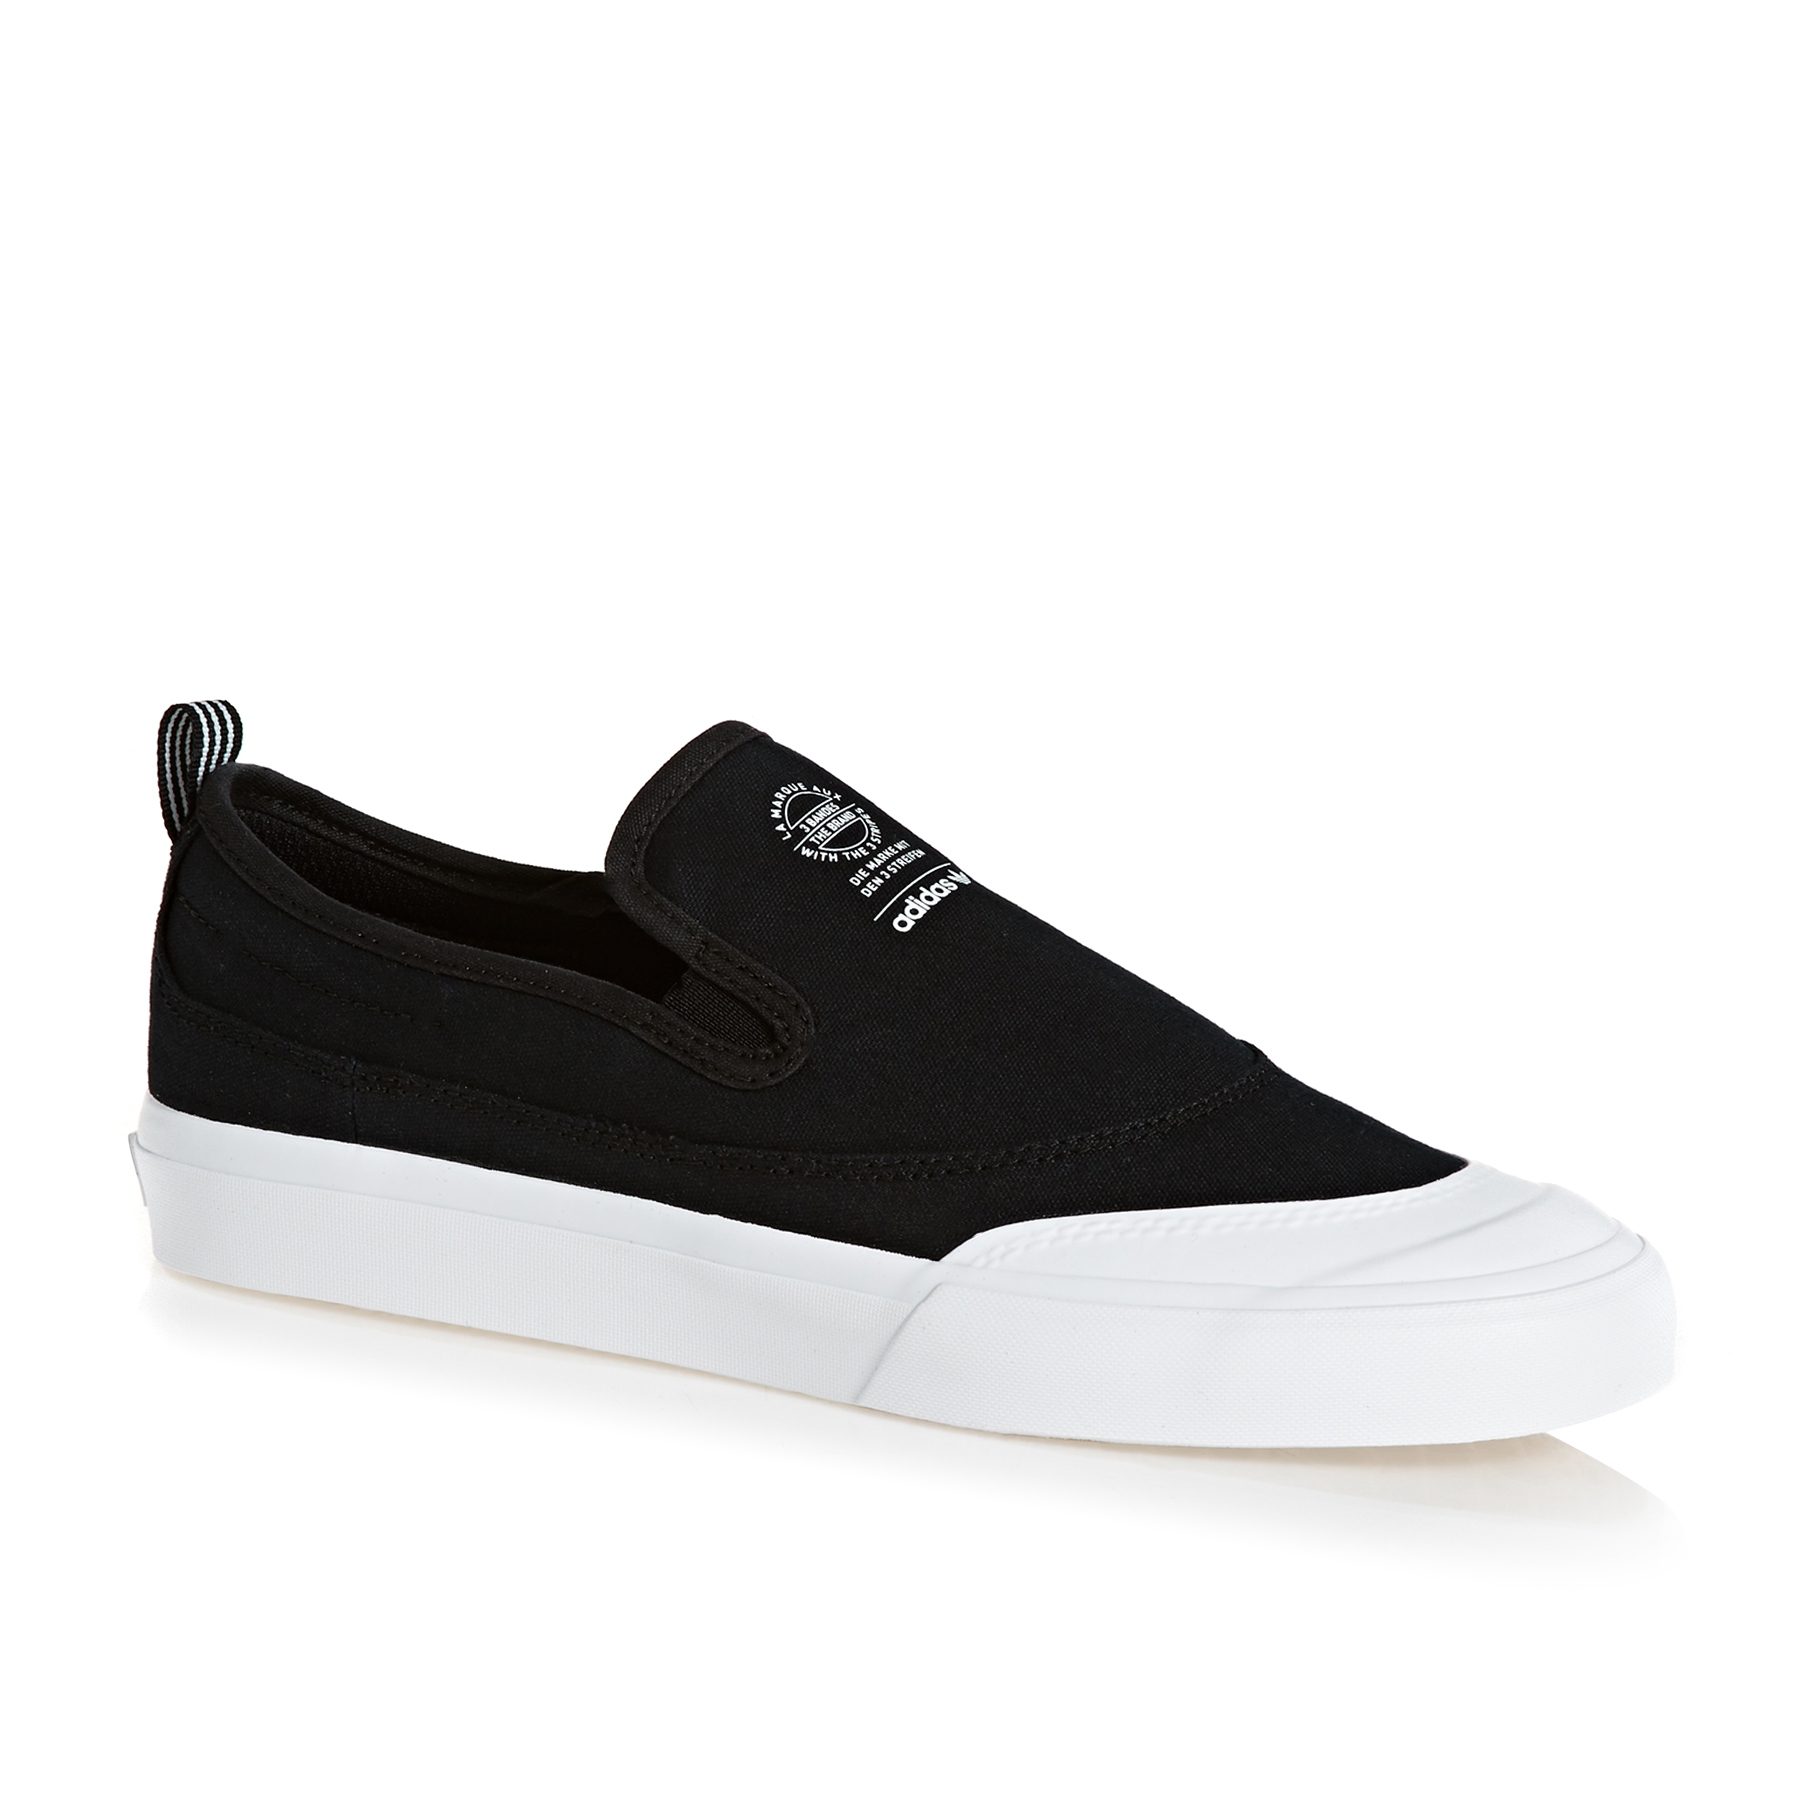 Adidas Matchcourt Slip Shoes Free Delivery options on All